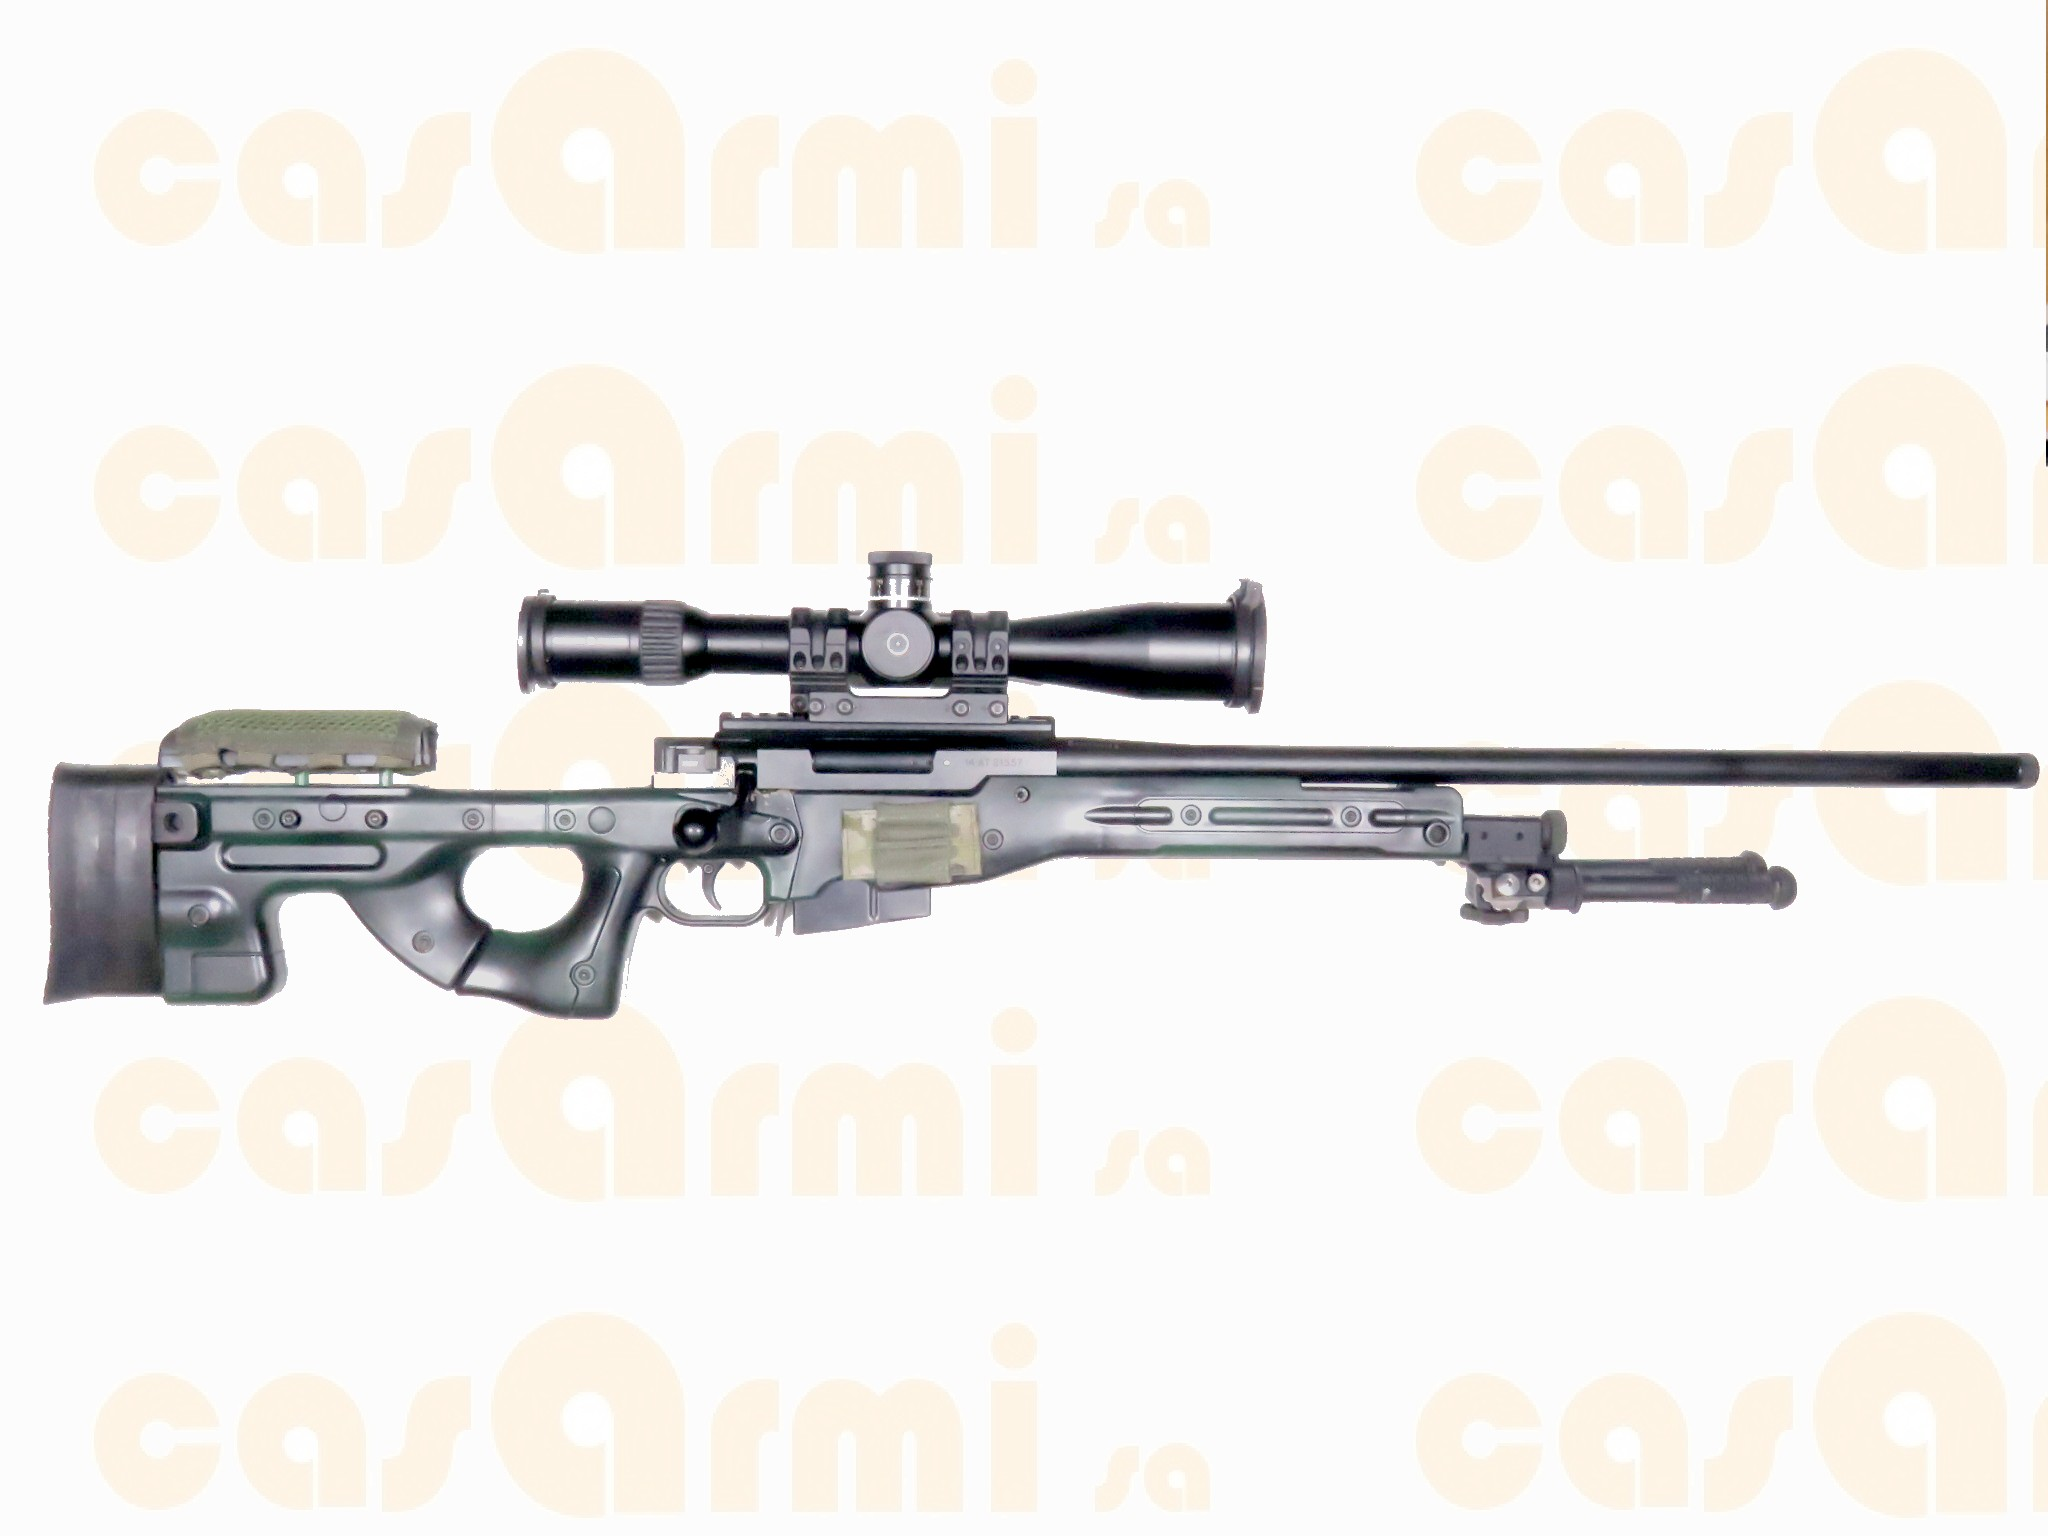 Mod. AT308  SENZA OTTICA  bipiede Atlas  seconda canna in cal. 6.5x47 Lapua